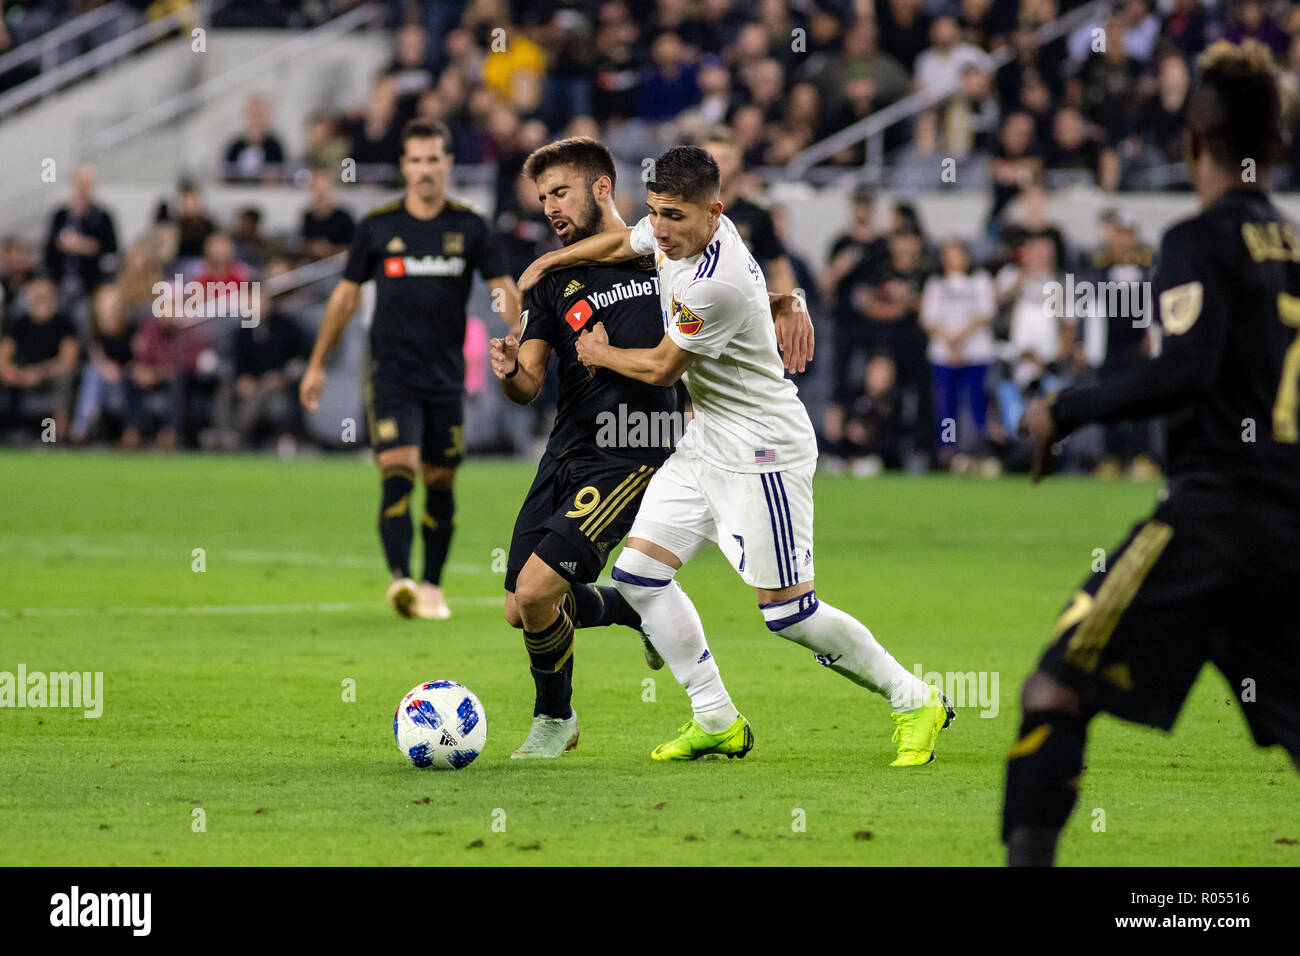 Los Angeles, USA. 1st November 2018. Real Salt Lake's Jefferson Savarino (7) stiff arms LAFC's Diego Rossi (9) off the ball during the first half of their playoff match. Credit: Ben Nichols/Alamy Live News - Stock Image